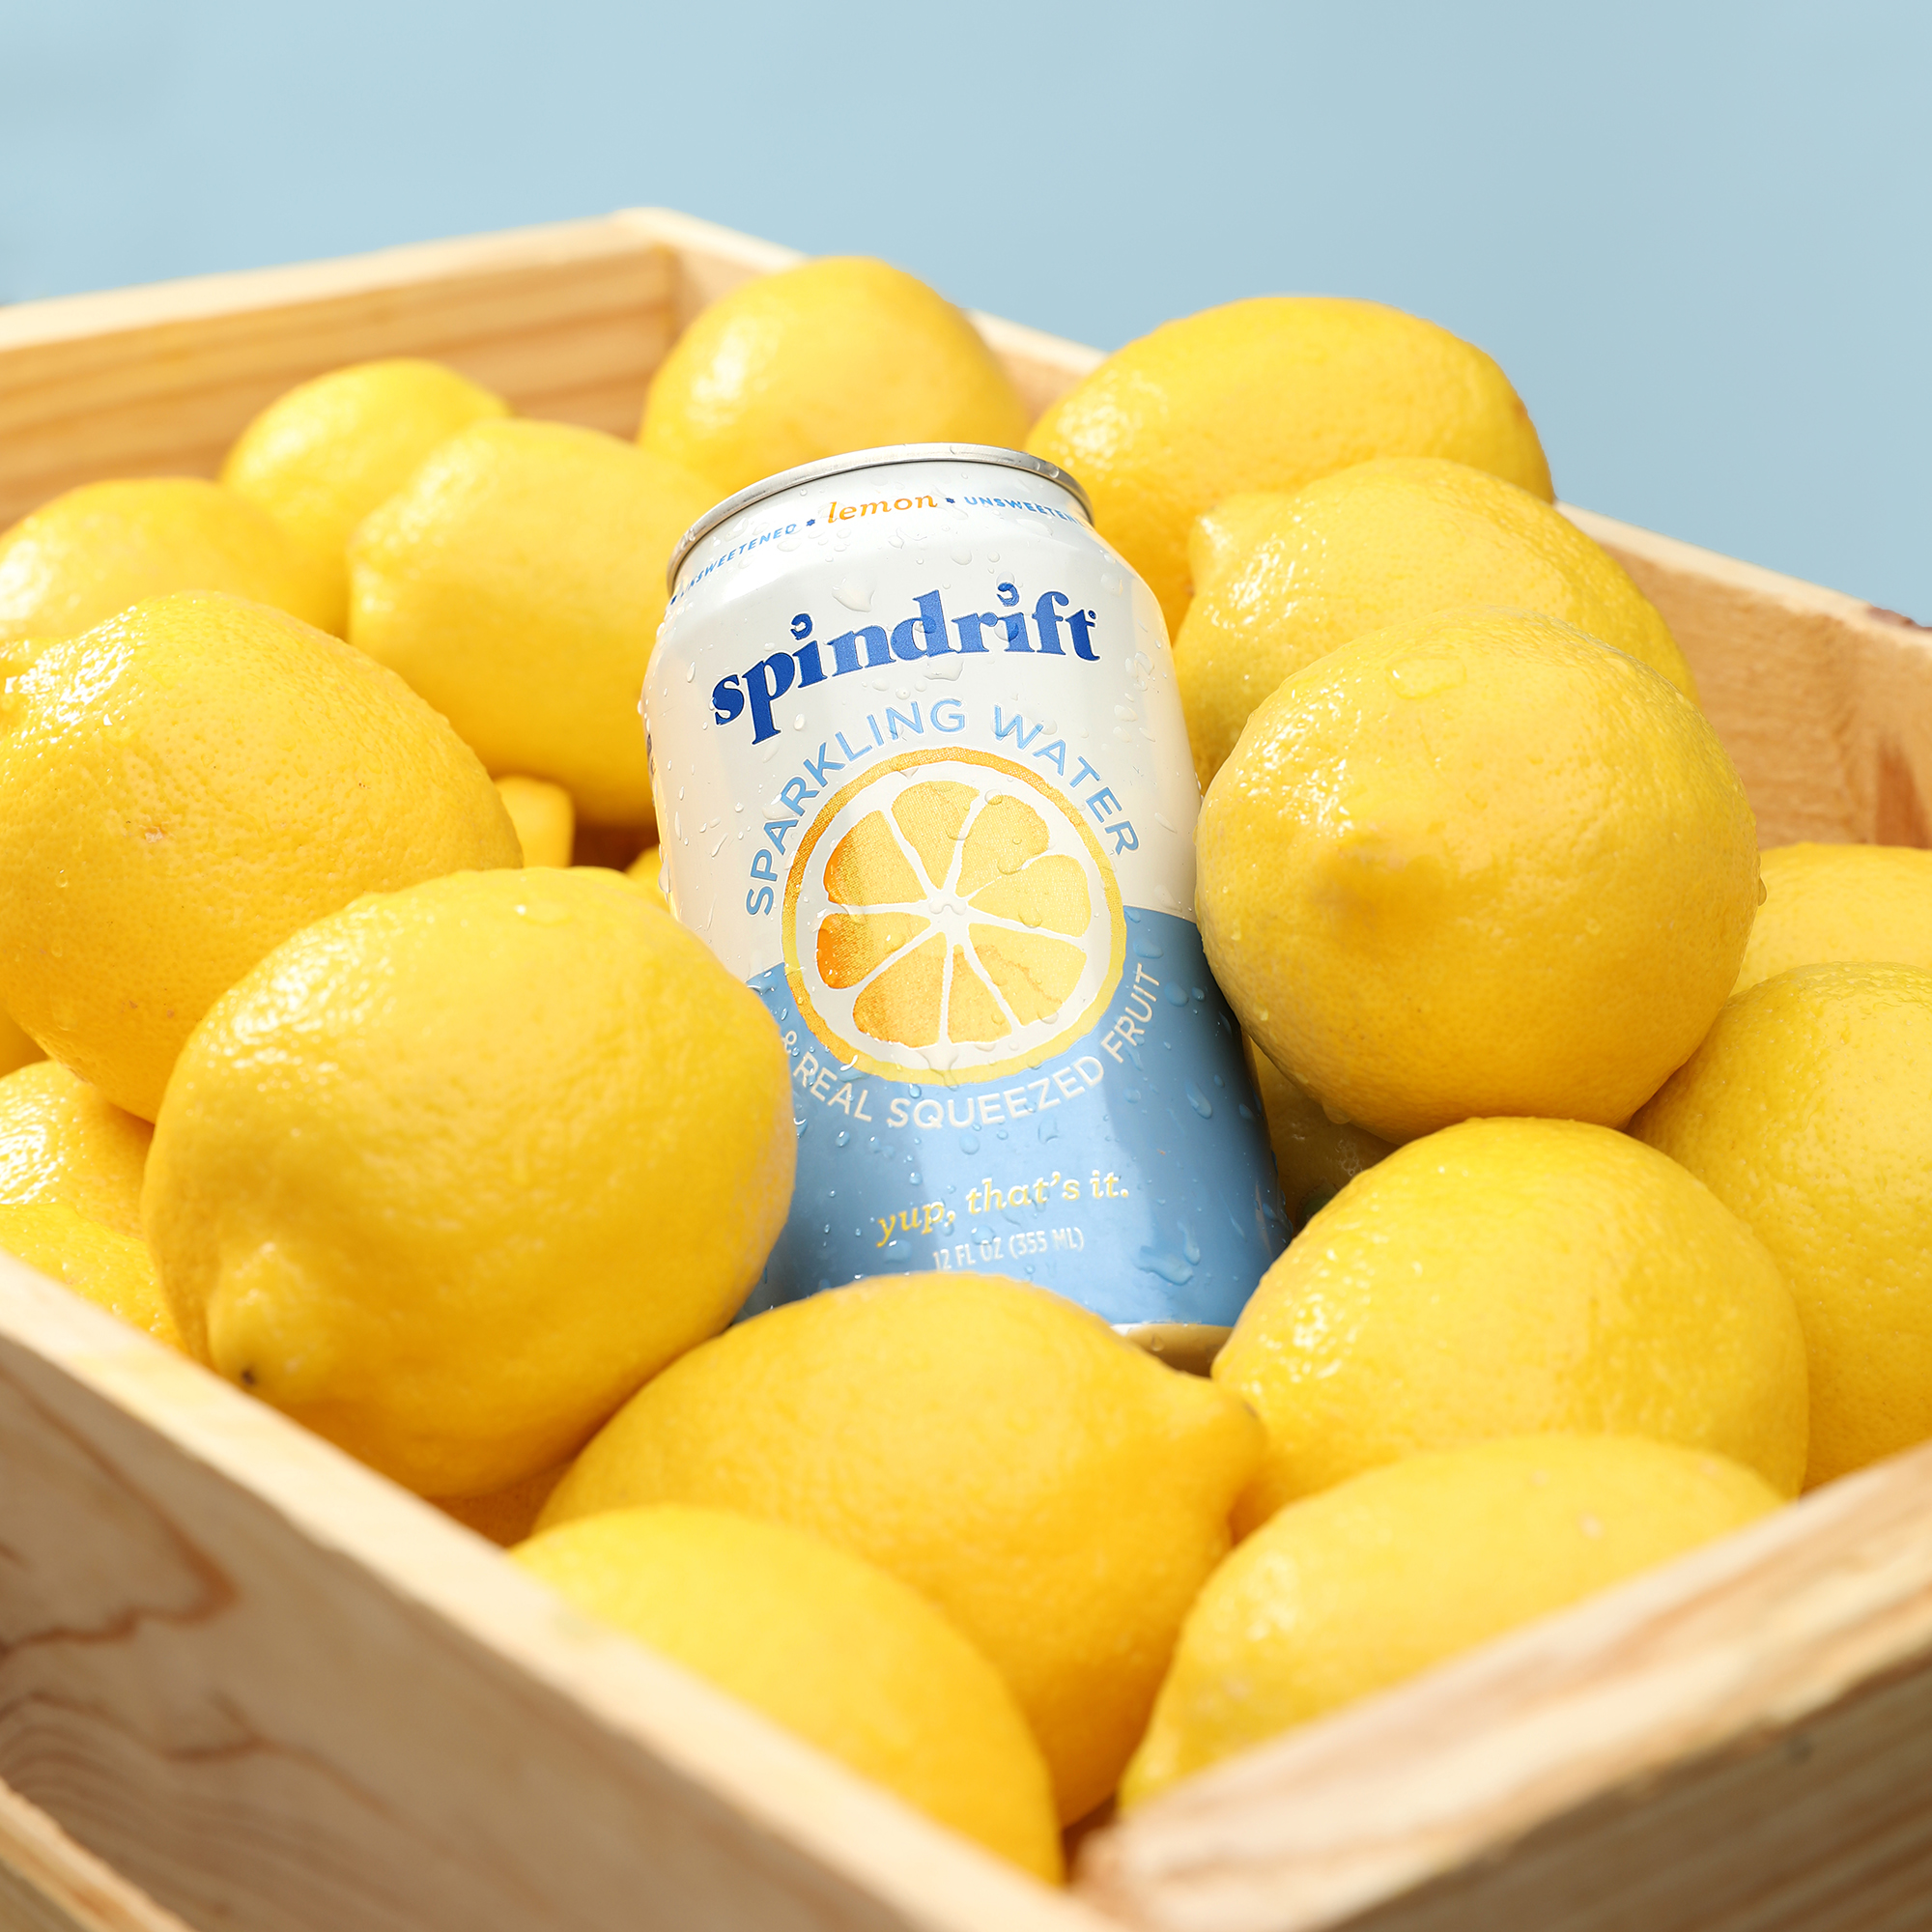 Studio Product Photography Spindrift Sparkling Water Drink